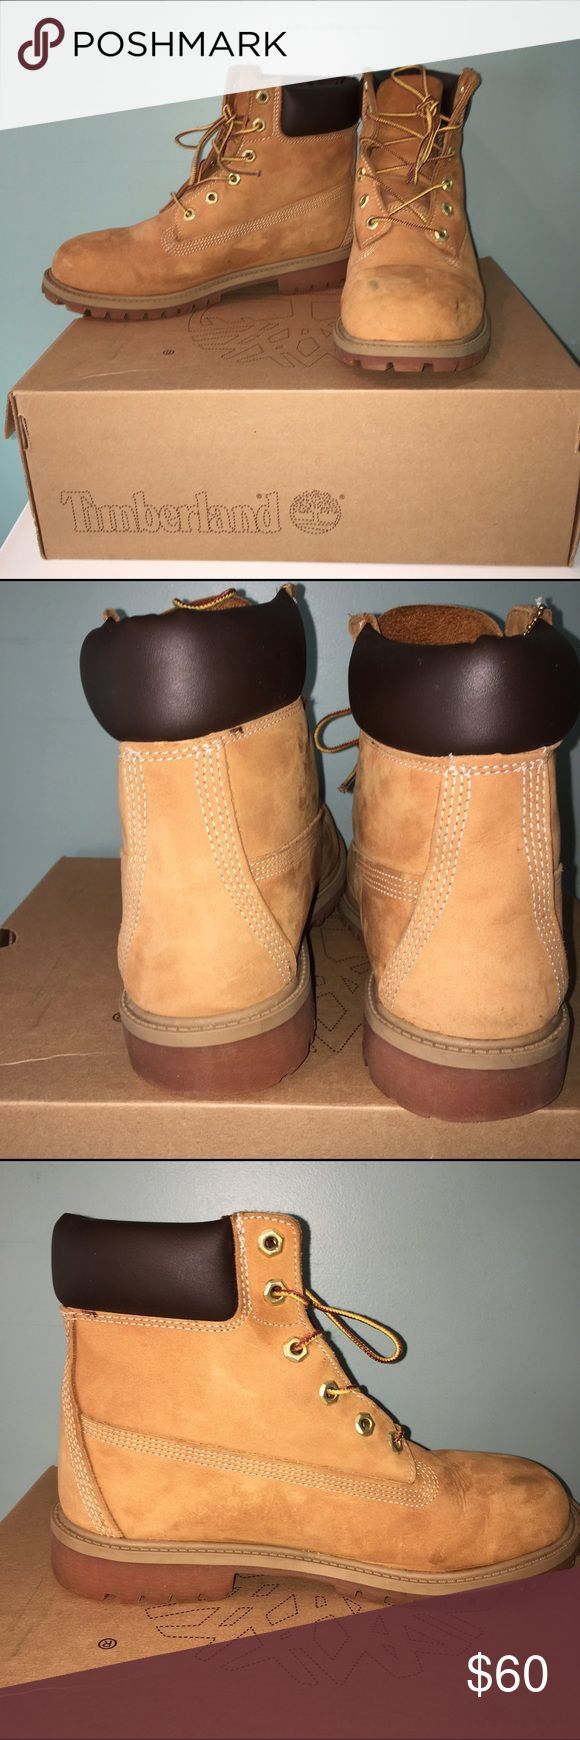 Children's Timberland Boots Size 7M Comes in original box, but box has some damage from storage - left boot has 2 black scuffs on toe (shown in pictures) - originally $95.00, price is based on flaw Timberland Shoes Boots